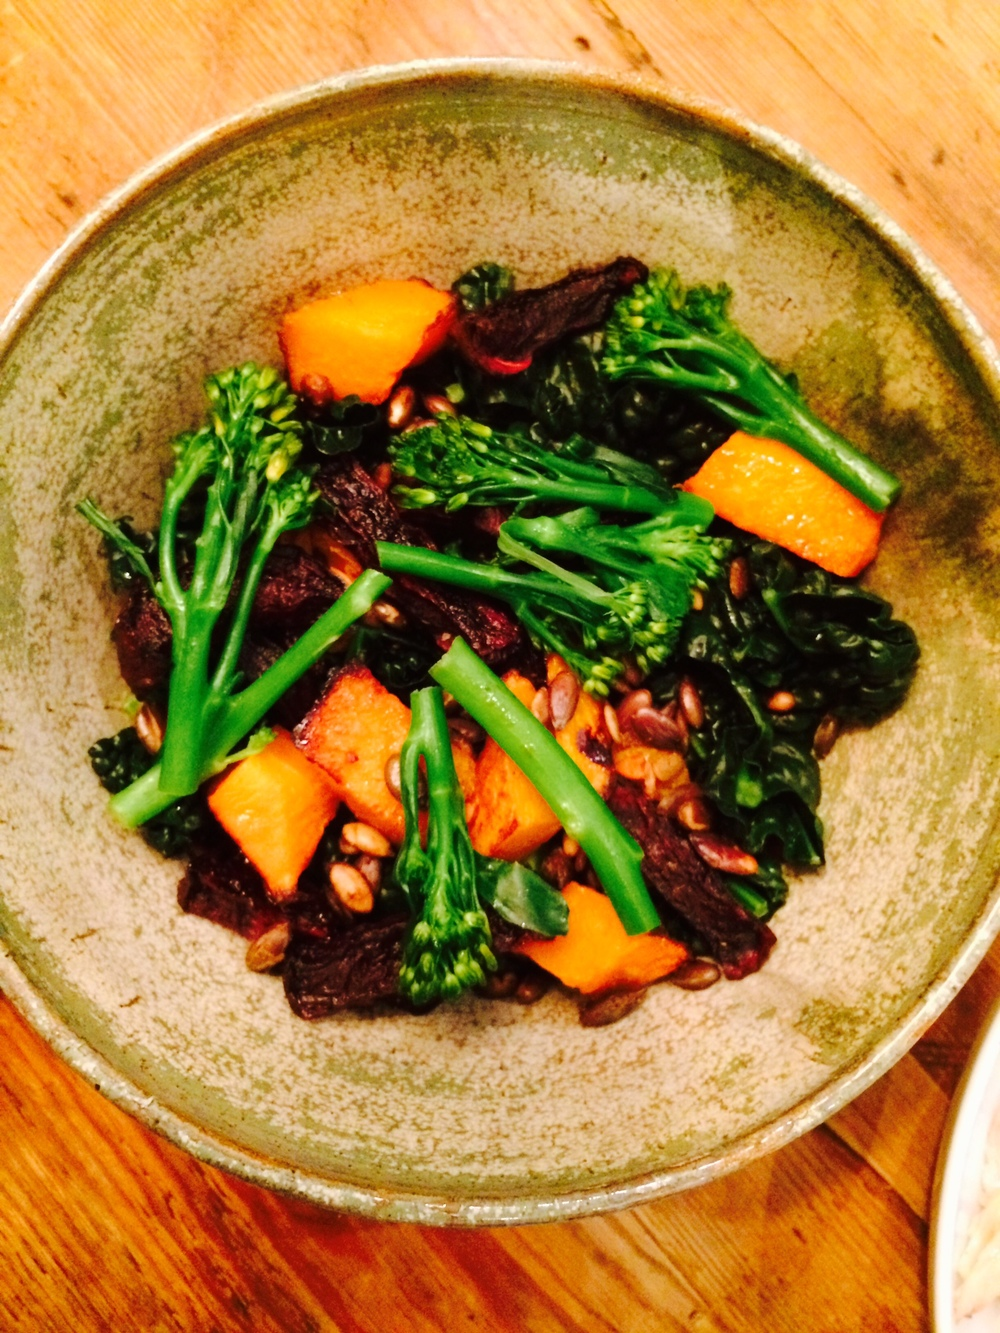 Kale, Squash and Beetroot Salad